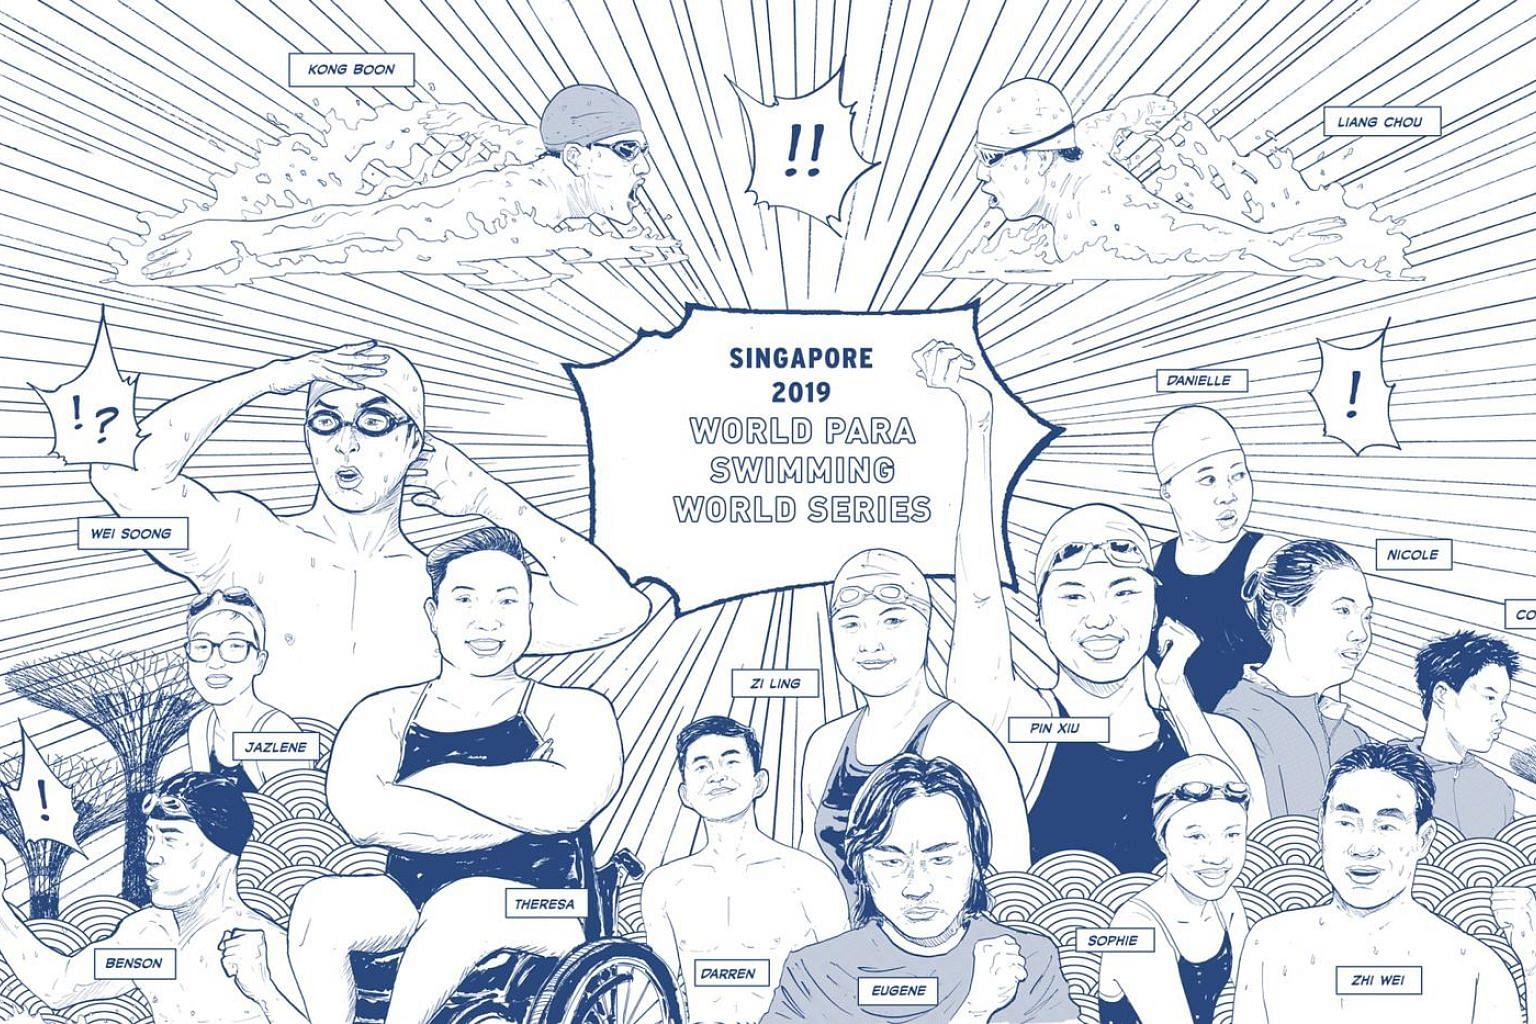 Created by award-winning cartoonist Sonny Liew, the visuals feature, among others, Singapore Paralympic swimmers such as Theresa Goh and Yip Pin Xiu.